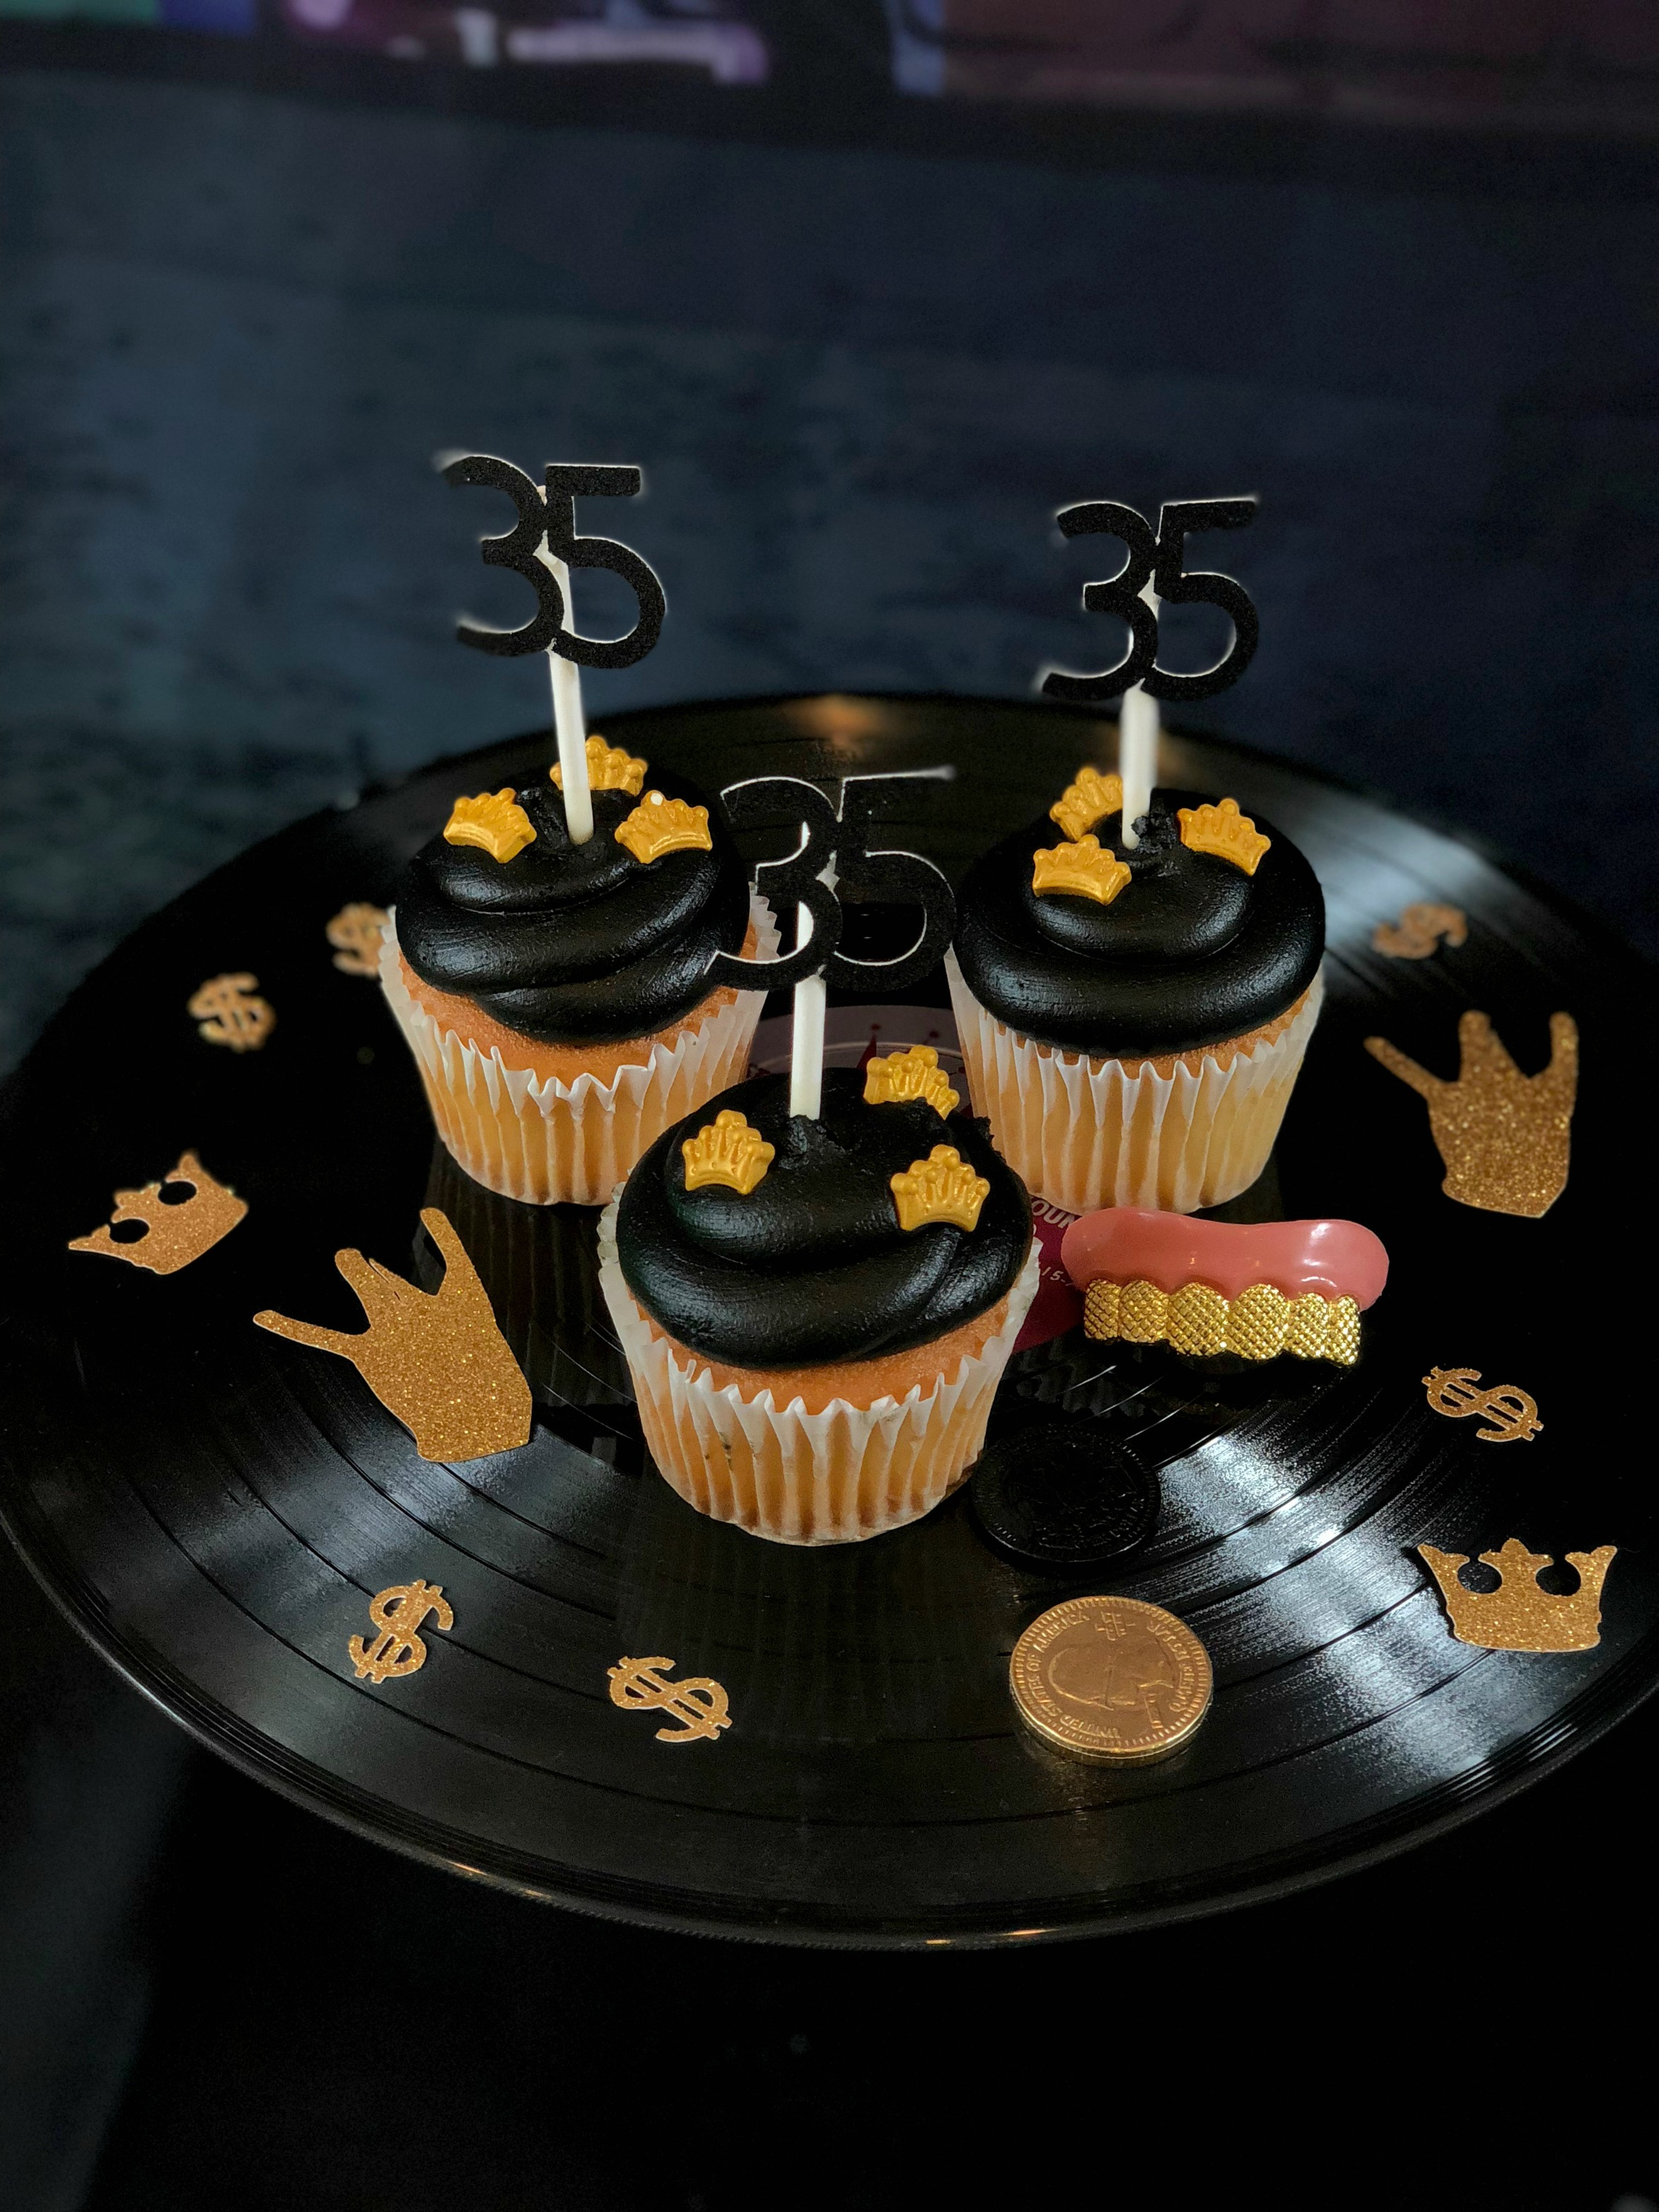 Cupcake Toppers-HipHop Dessert Ideas-35th Birthday-www.SugarPartiesLA.com.jpg